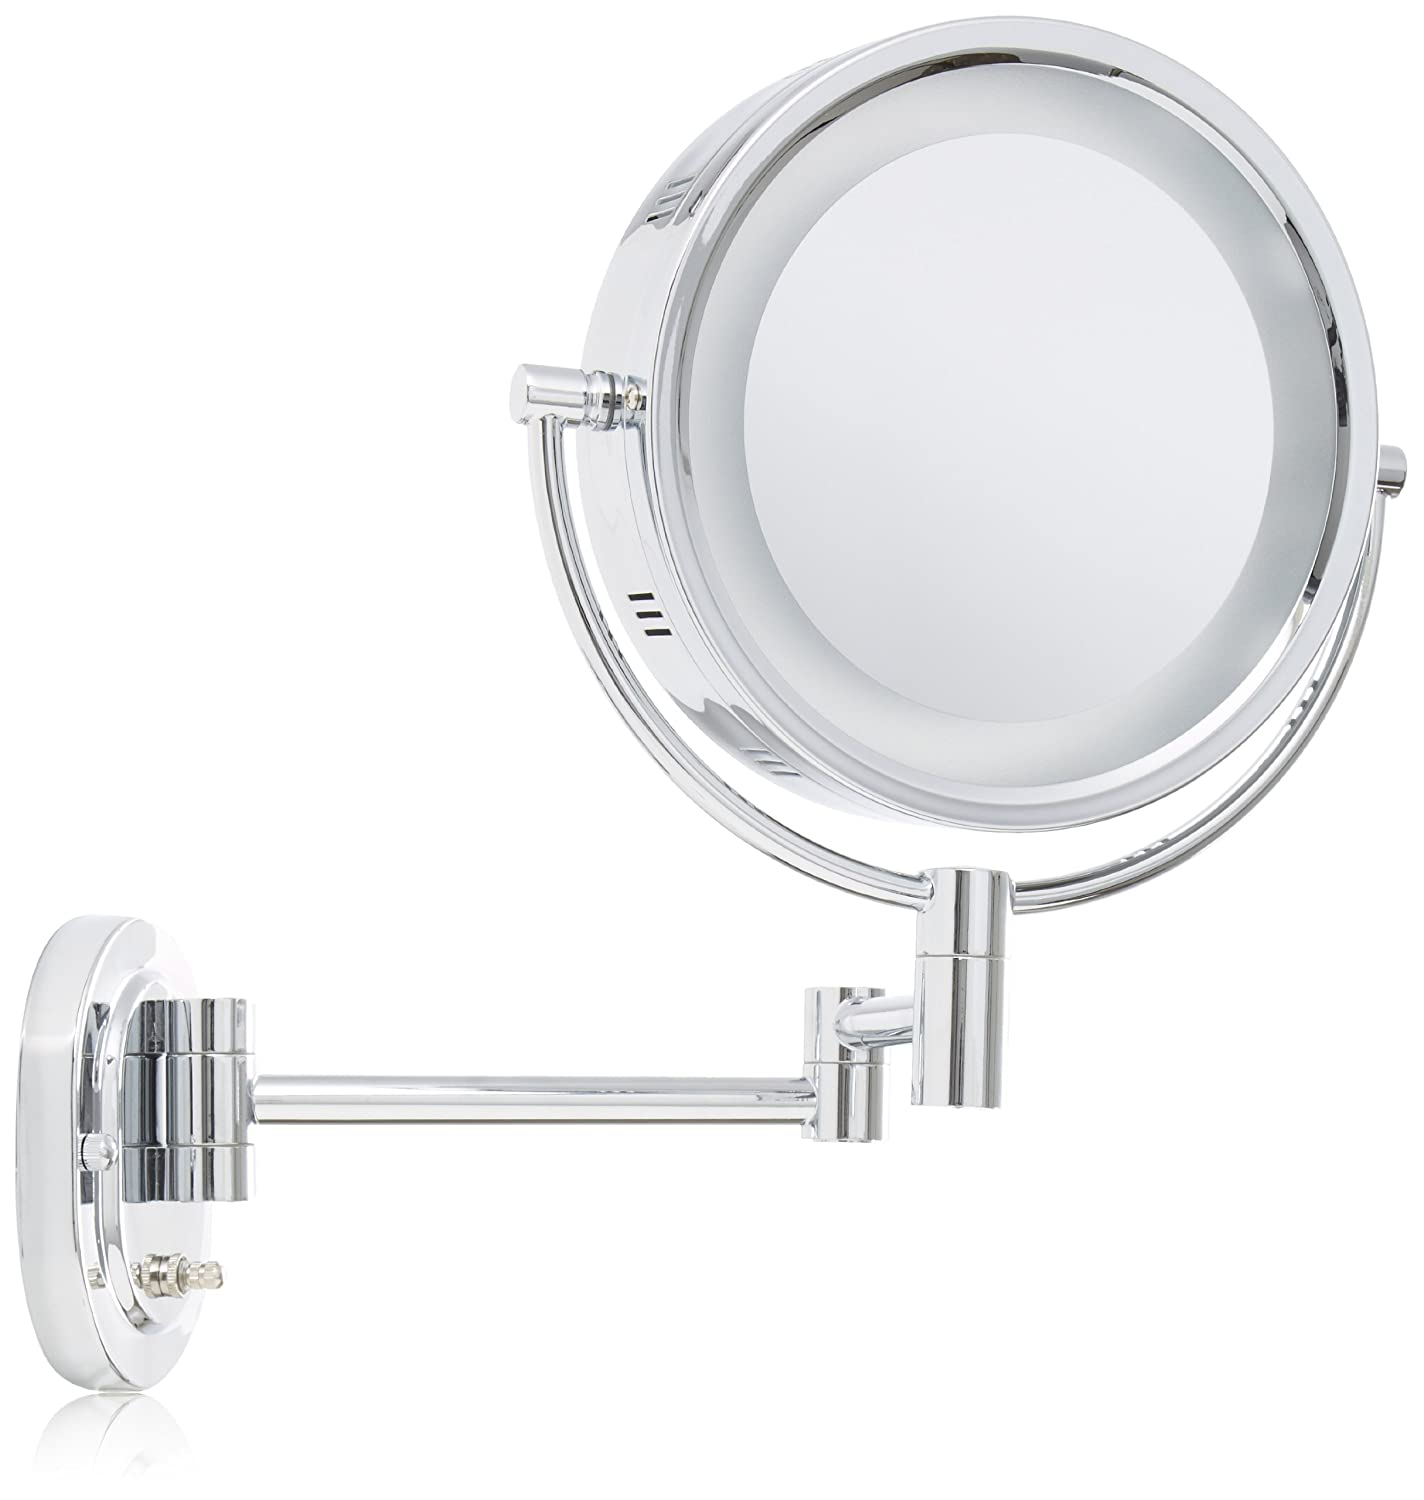 Amazon jerdon hl65c 8 inch lighted wall mount makeup mirror amazon jerdon hl65c 8 inch lighted wall mount makeup mirror with 5x magnification chrome finish personal makeup mirrors beauty mozeypictures Choice Image